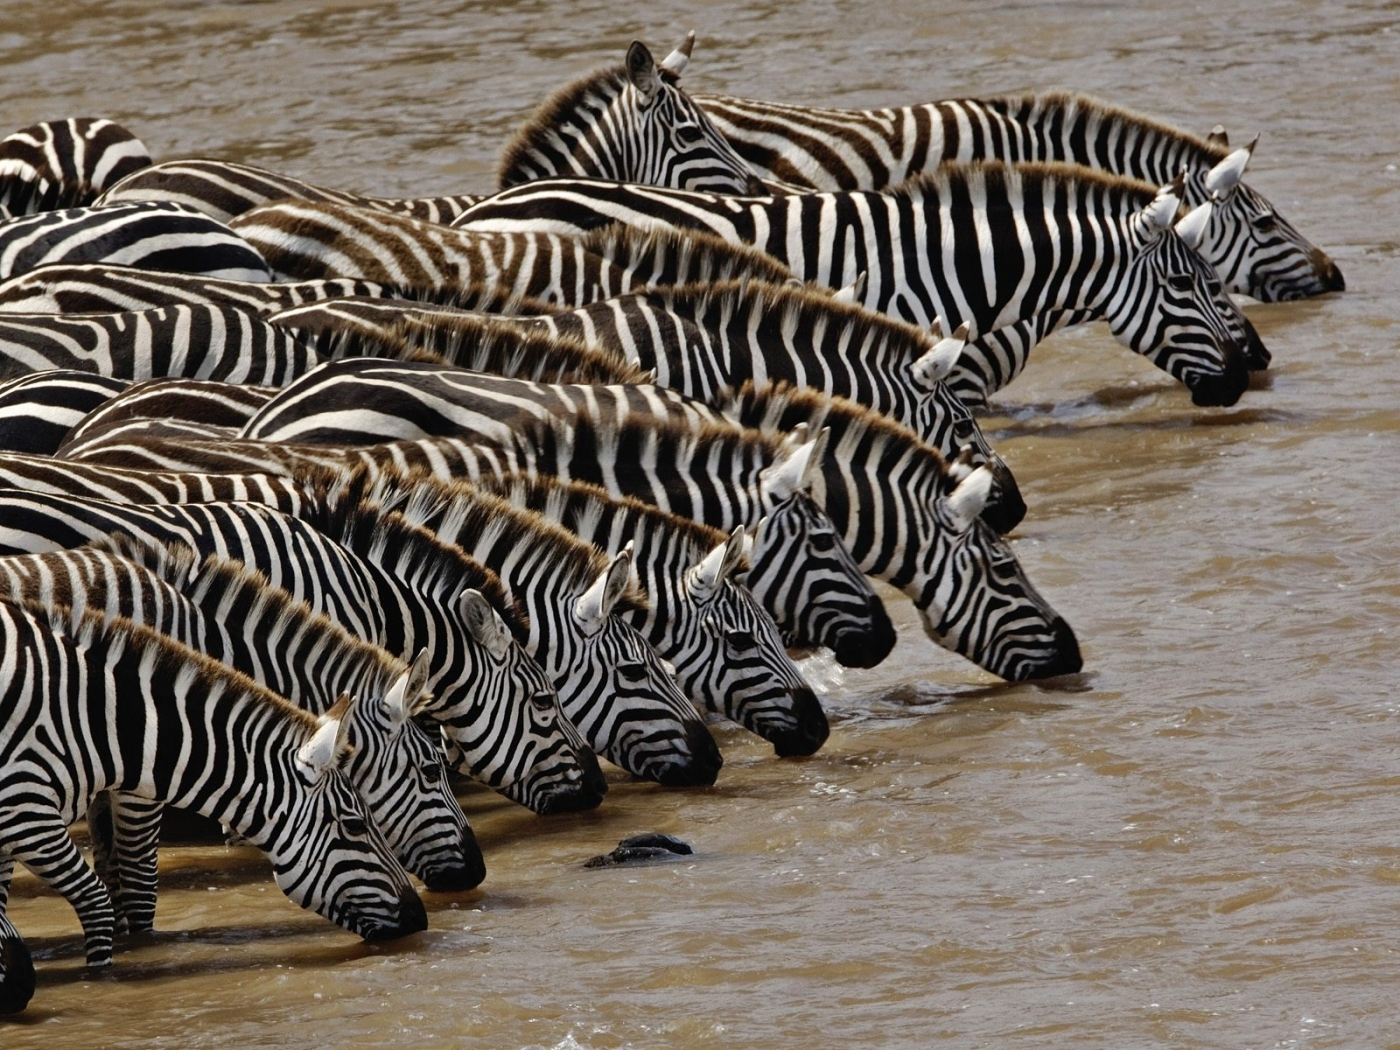 44933 download wallpaper Animals, Zebra screensavers and pictures for free